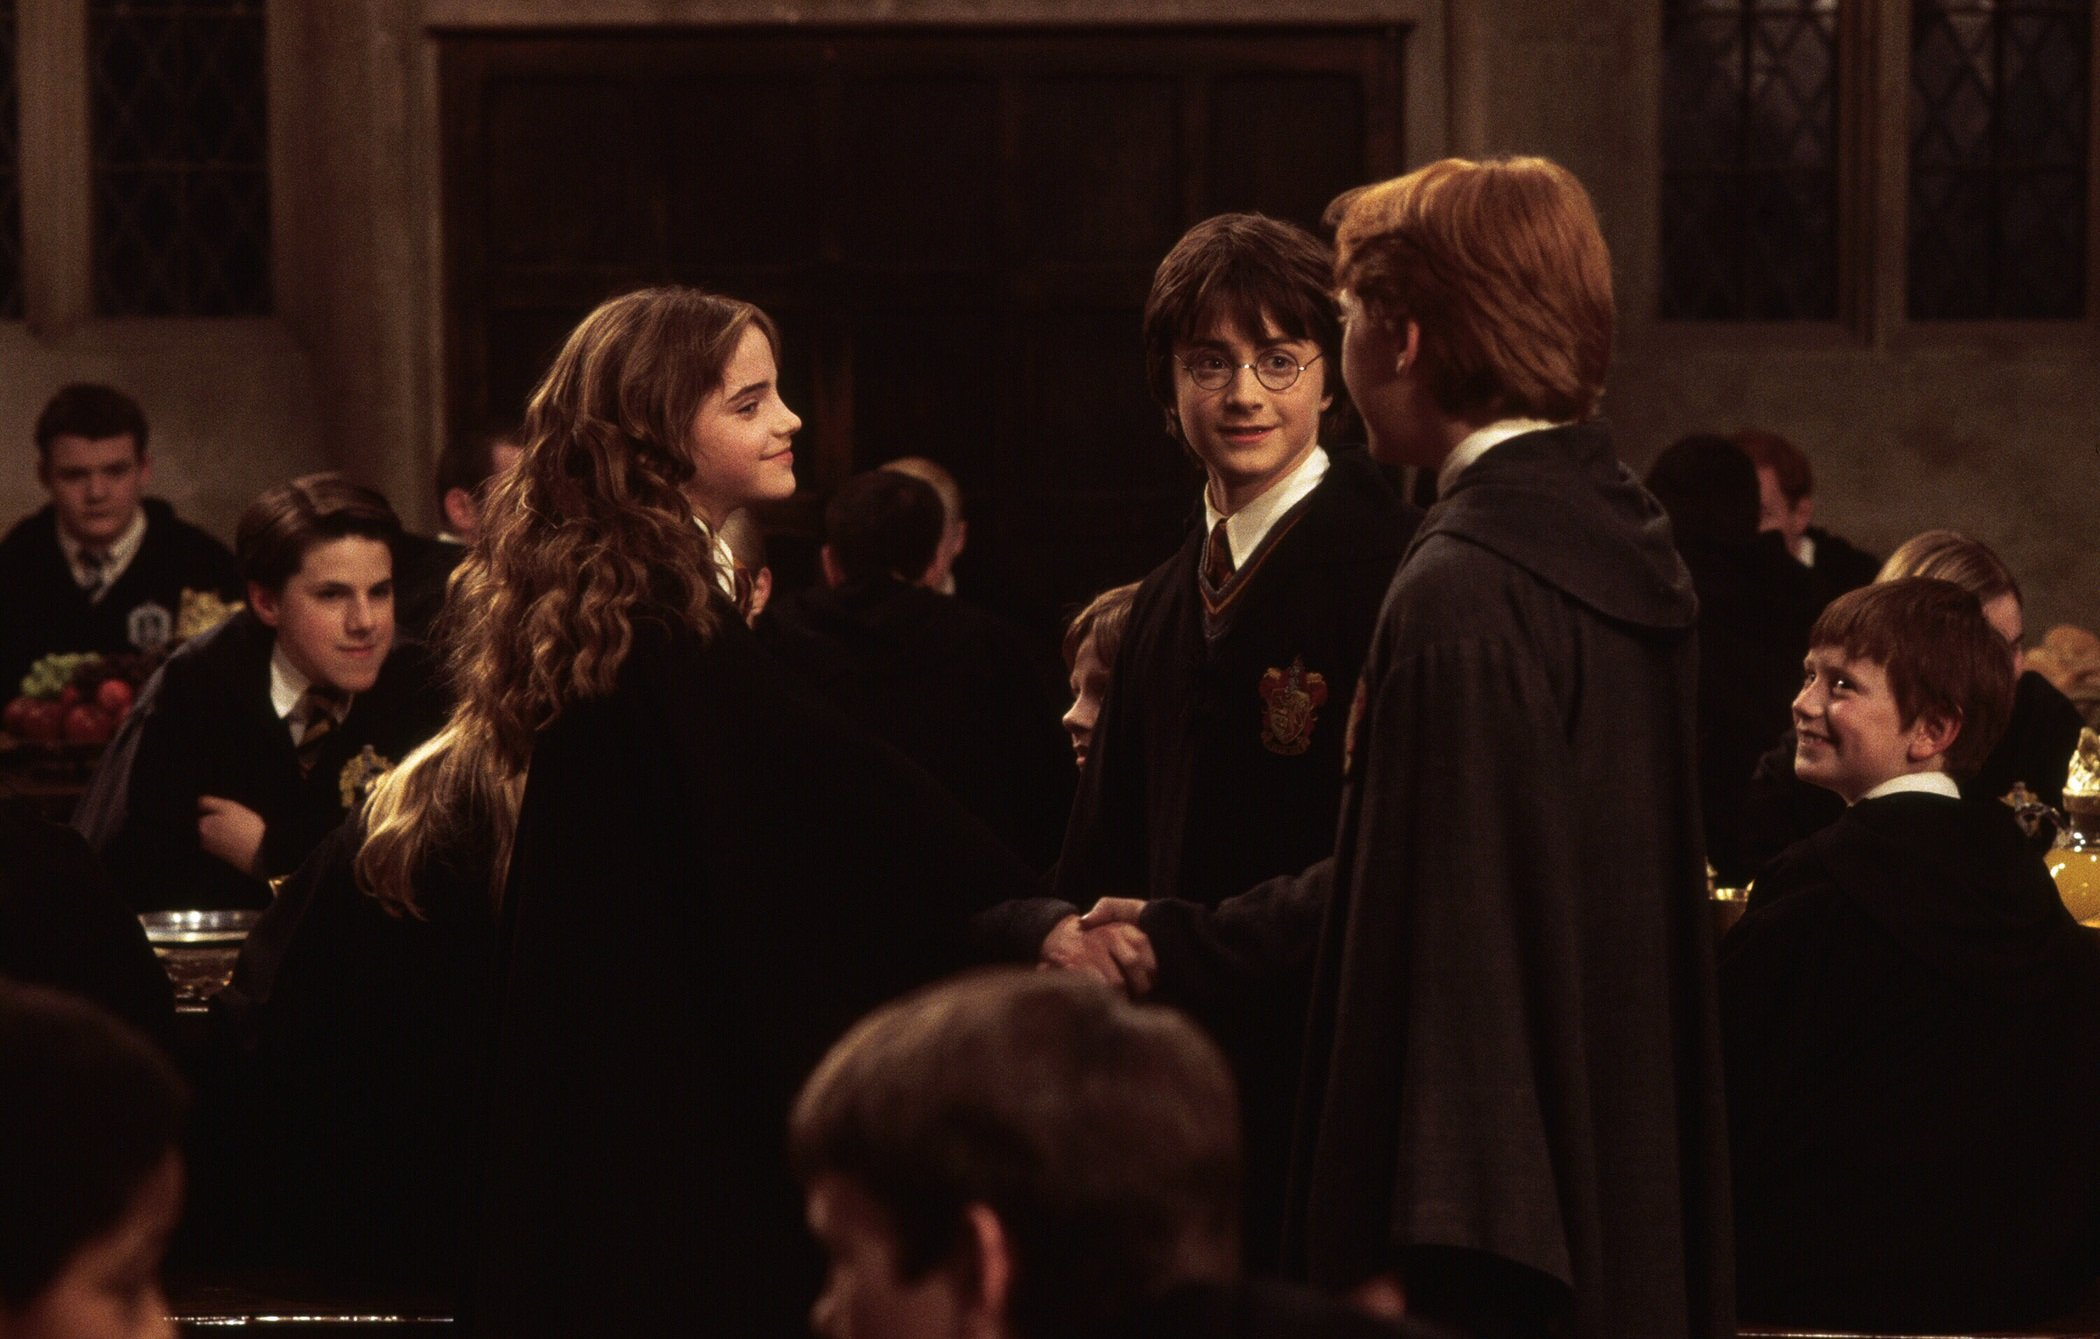 Harry Potter 2 on TF1: this modified scene for Emma Watson took on a whole new meaning